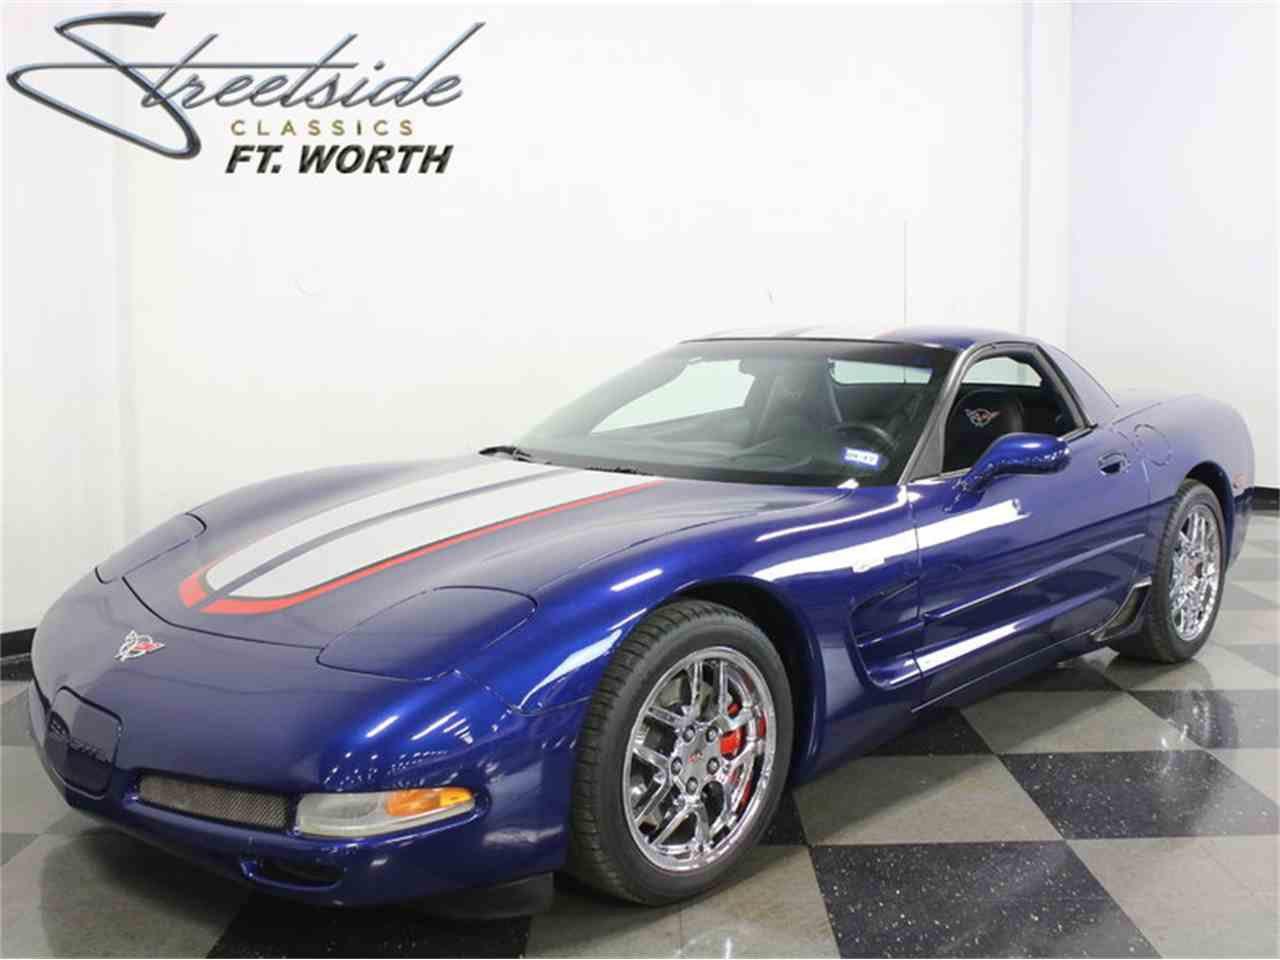 2004 chevrolet corvette commemorative edition for sale cc 950428. Black Bedroom Furniture Sets. Home Design Ideas